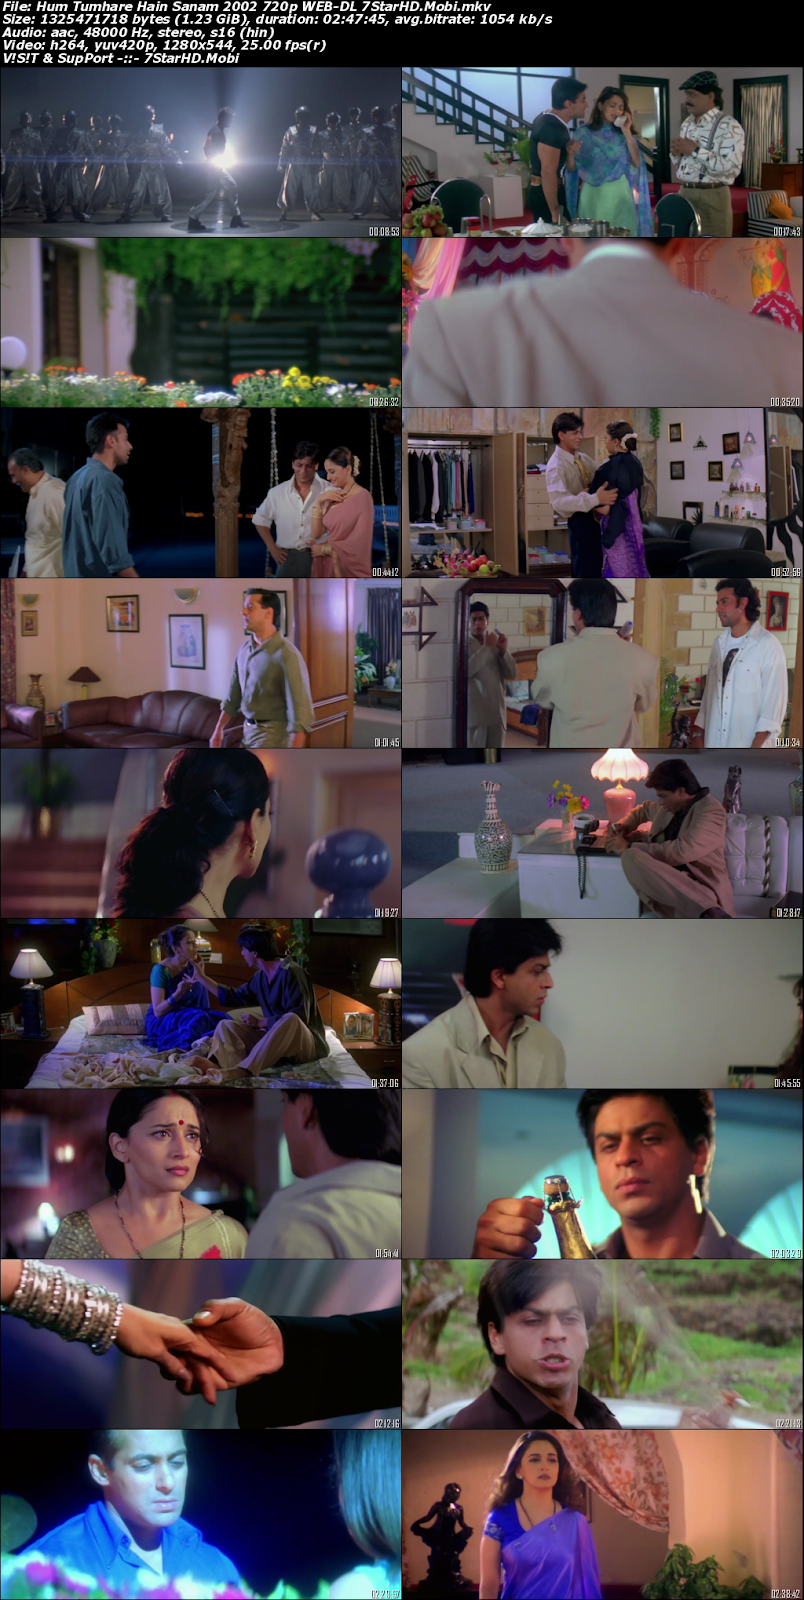 Hum Tumhare Hain Sanam 2002 Hindi 720p HDRip x264 1.2GB 2